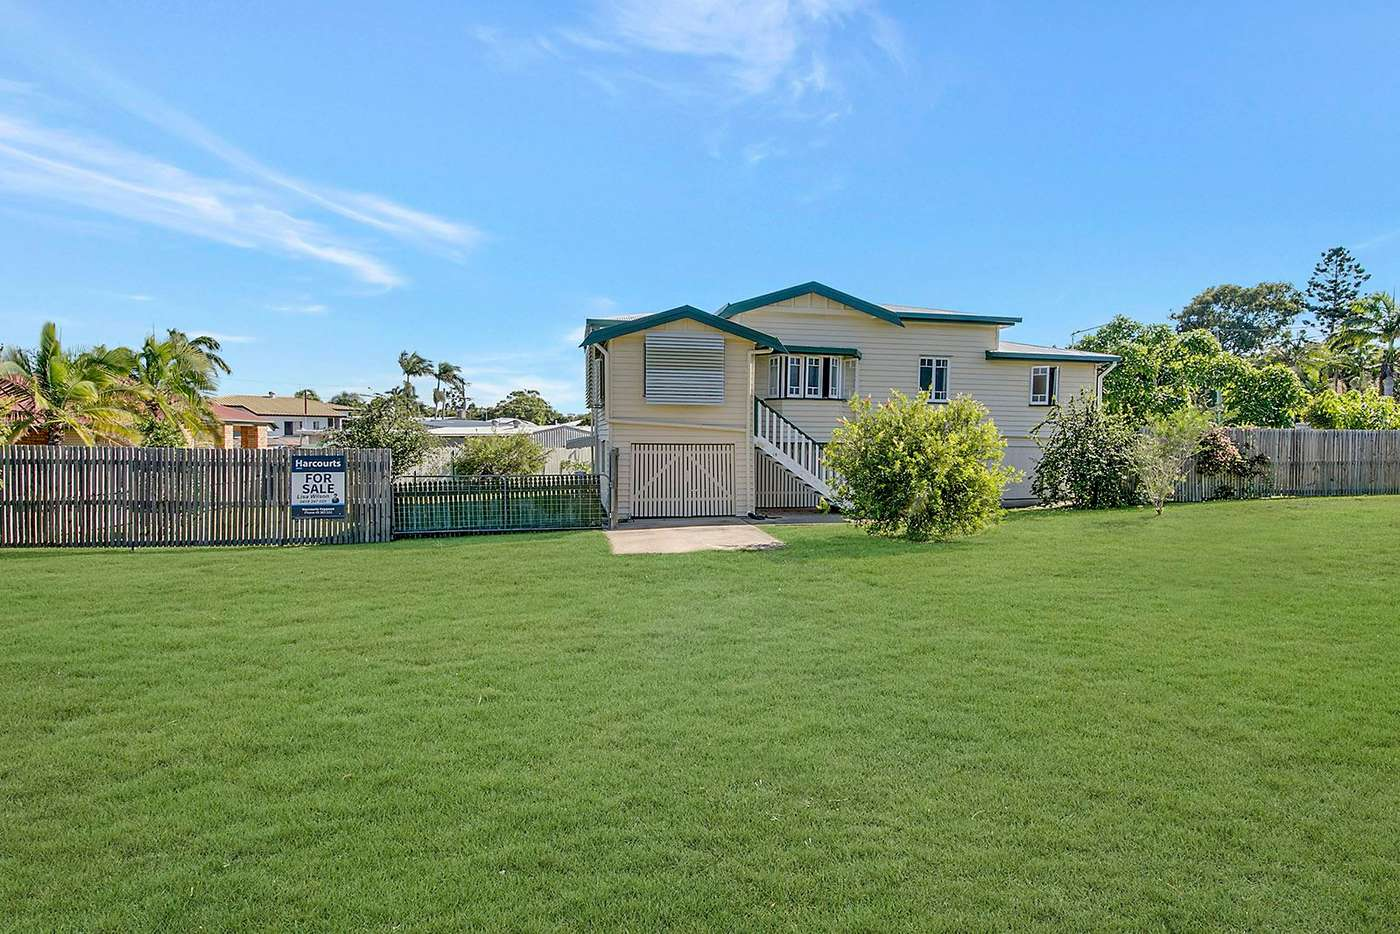 Main view of Homely house listing, 18 Adelaide Park Road, Yeppoon QLD 4703